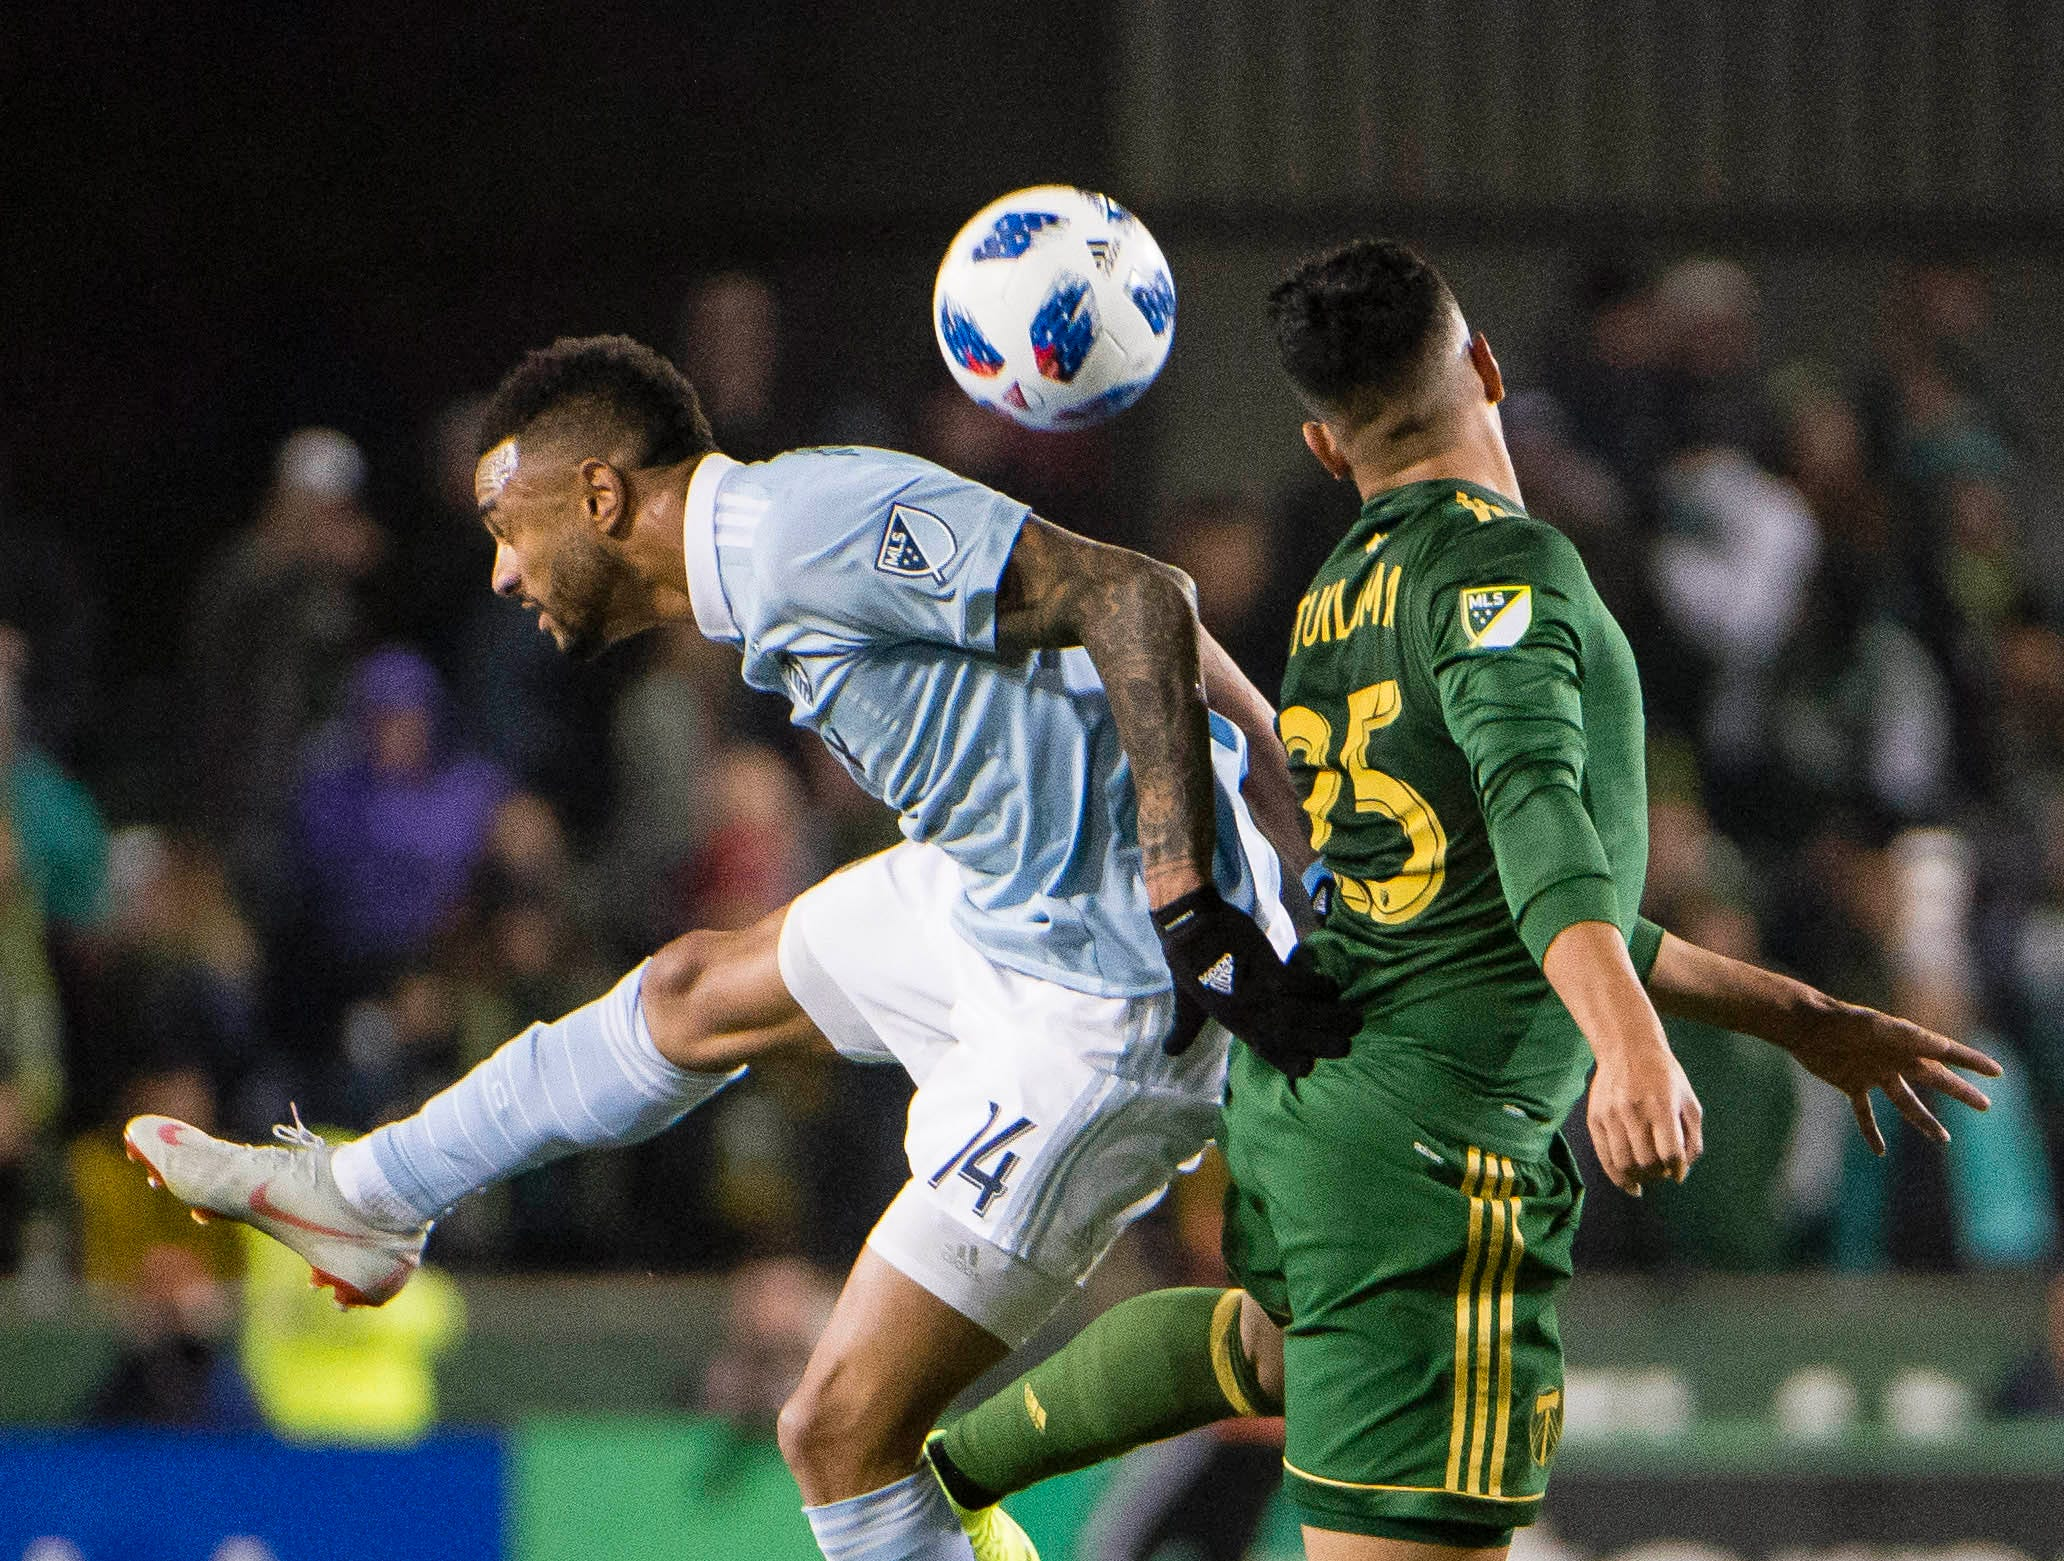 Nov 25, 2018; Portland, OR, USA; Sporting Kansas City forward Khiry Shelton (14) and Portland Timbers defender Bill Tuiloma (25) battle for a header during the second half in the first leg of the MLS Western Conference Championship at Providence Park. The game ended tied 0-0.  Mandatory Credit: Troy Wayrynen-USA TODAY Sports